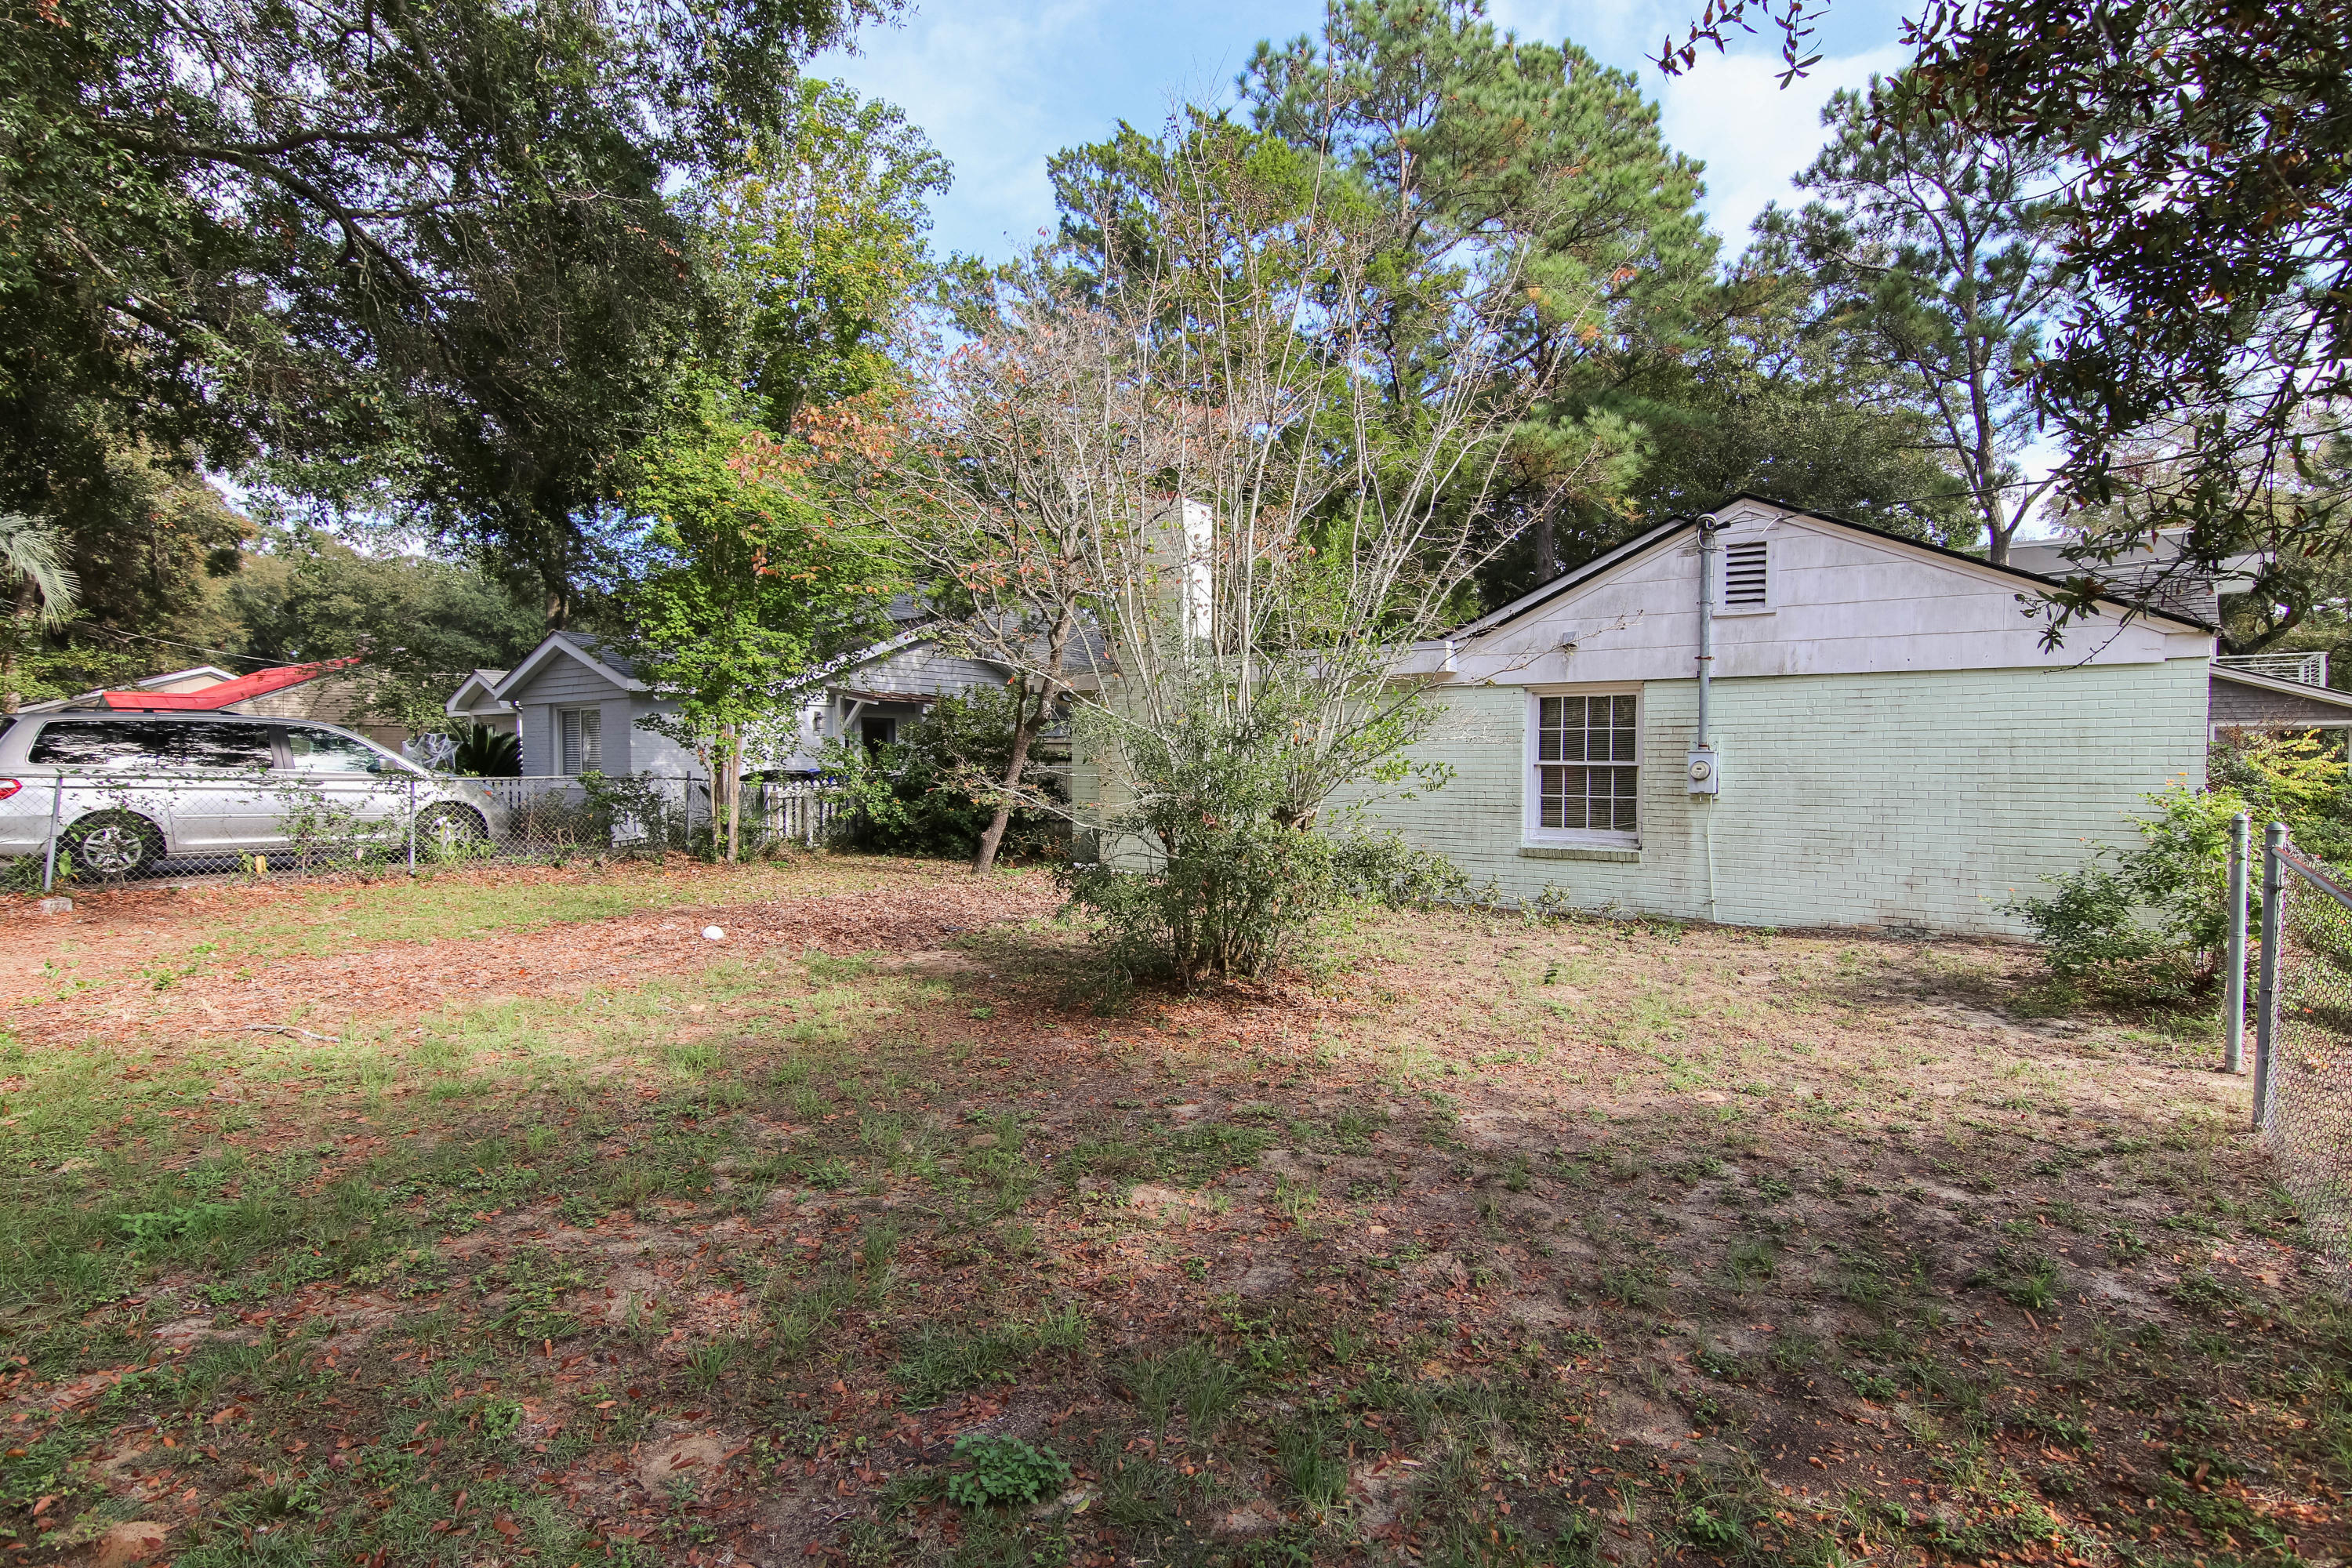 Old Mt Pleasant Homes For Sale - 1106 Simmons, Mount Pleasant, SC - 0